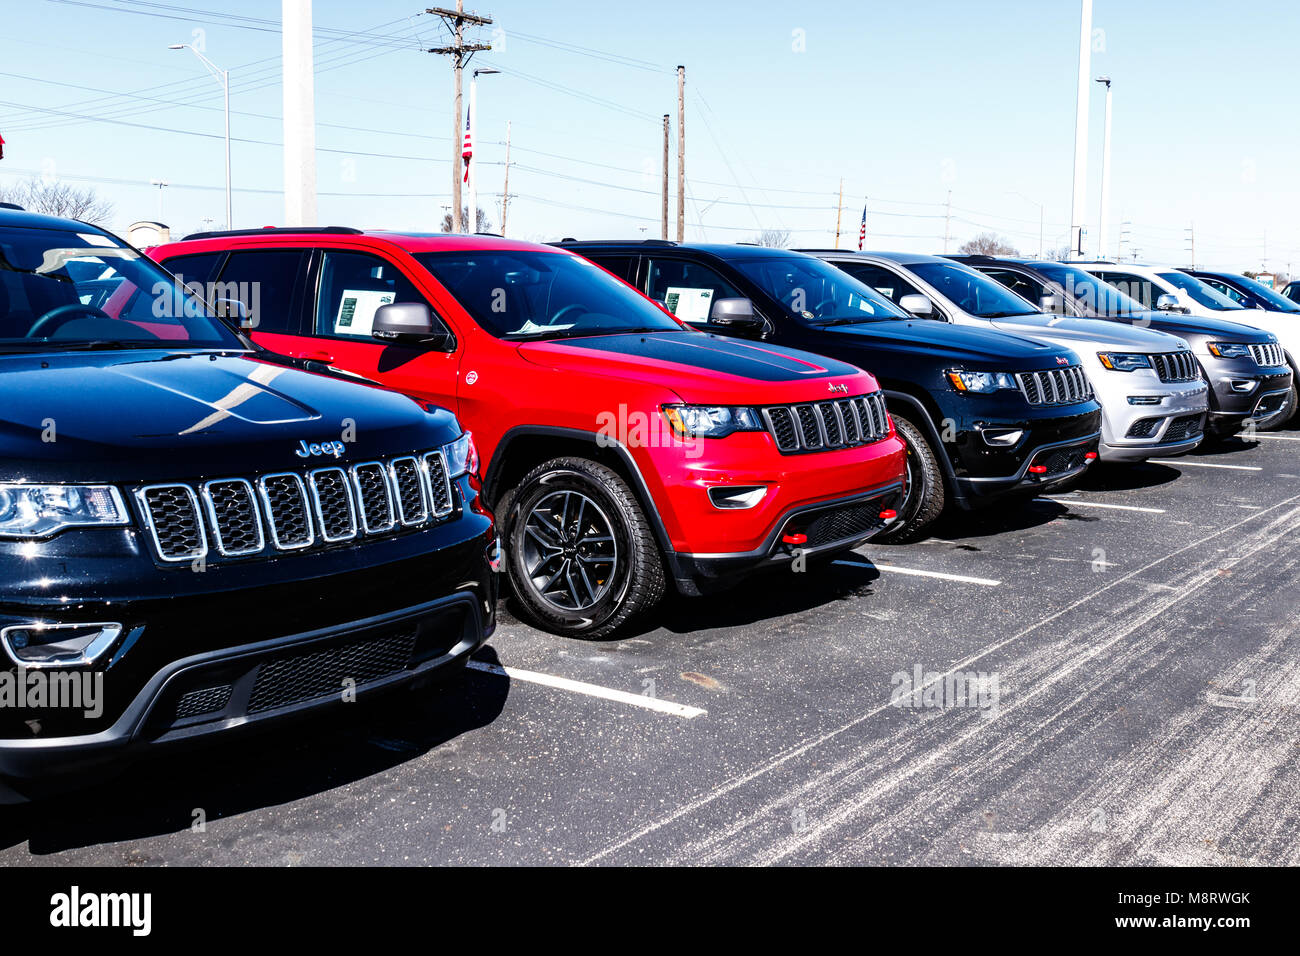 Noblesville - Circa March 2018: Jeep Automobile Dealership. Jeep is a subsidiary of Fiat Chrysler Automobiles. FCA Stock Photo